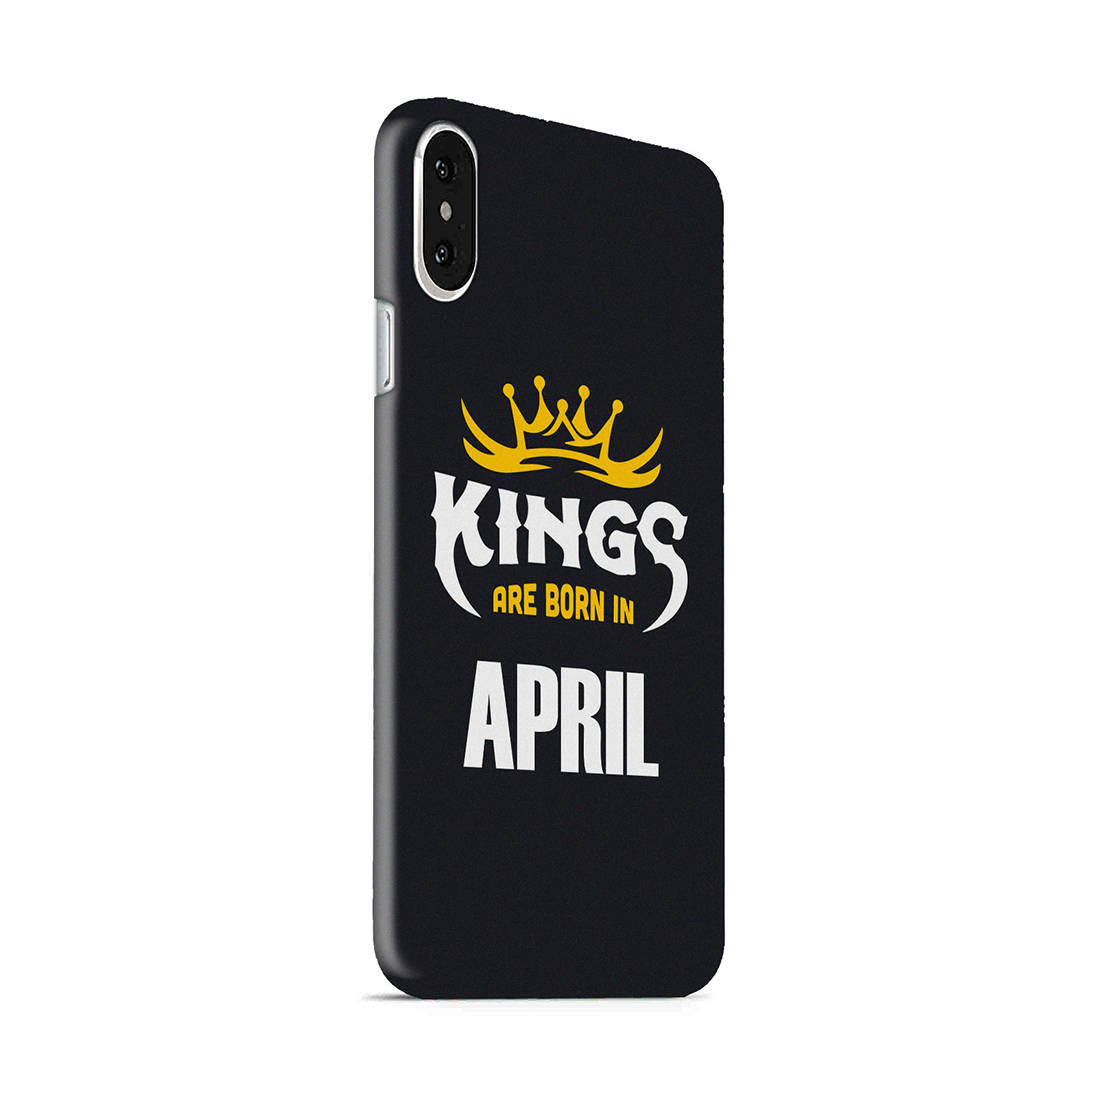 Kings April - Narcissist iPhone X Mobile Cover Case - MADANYU